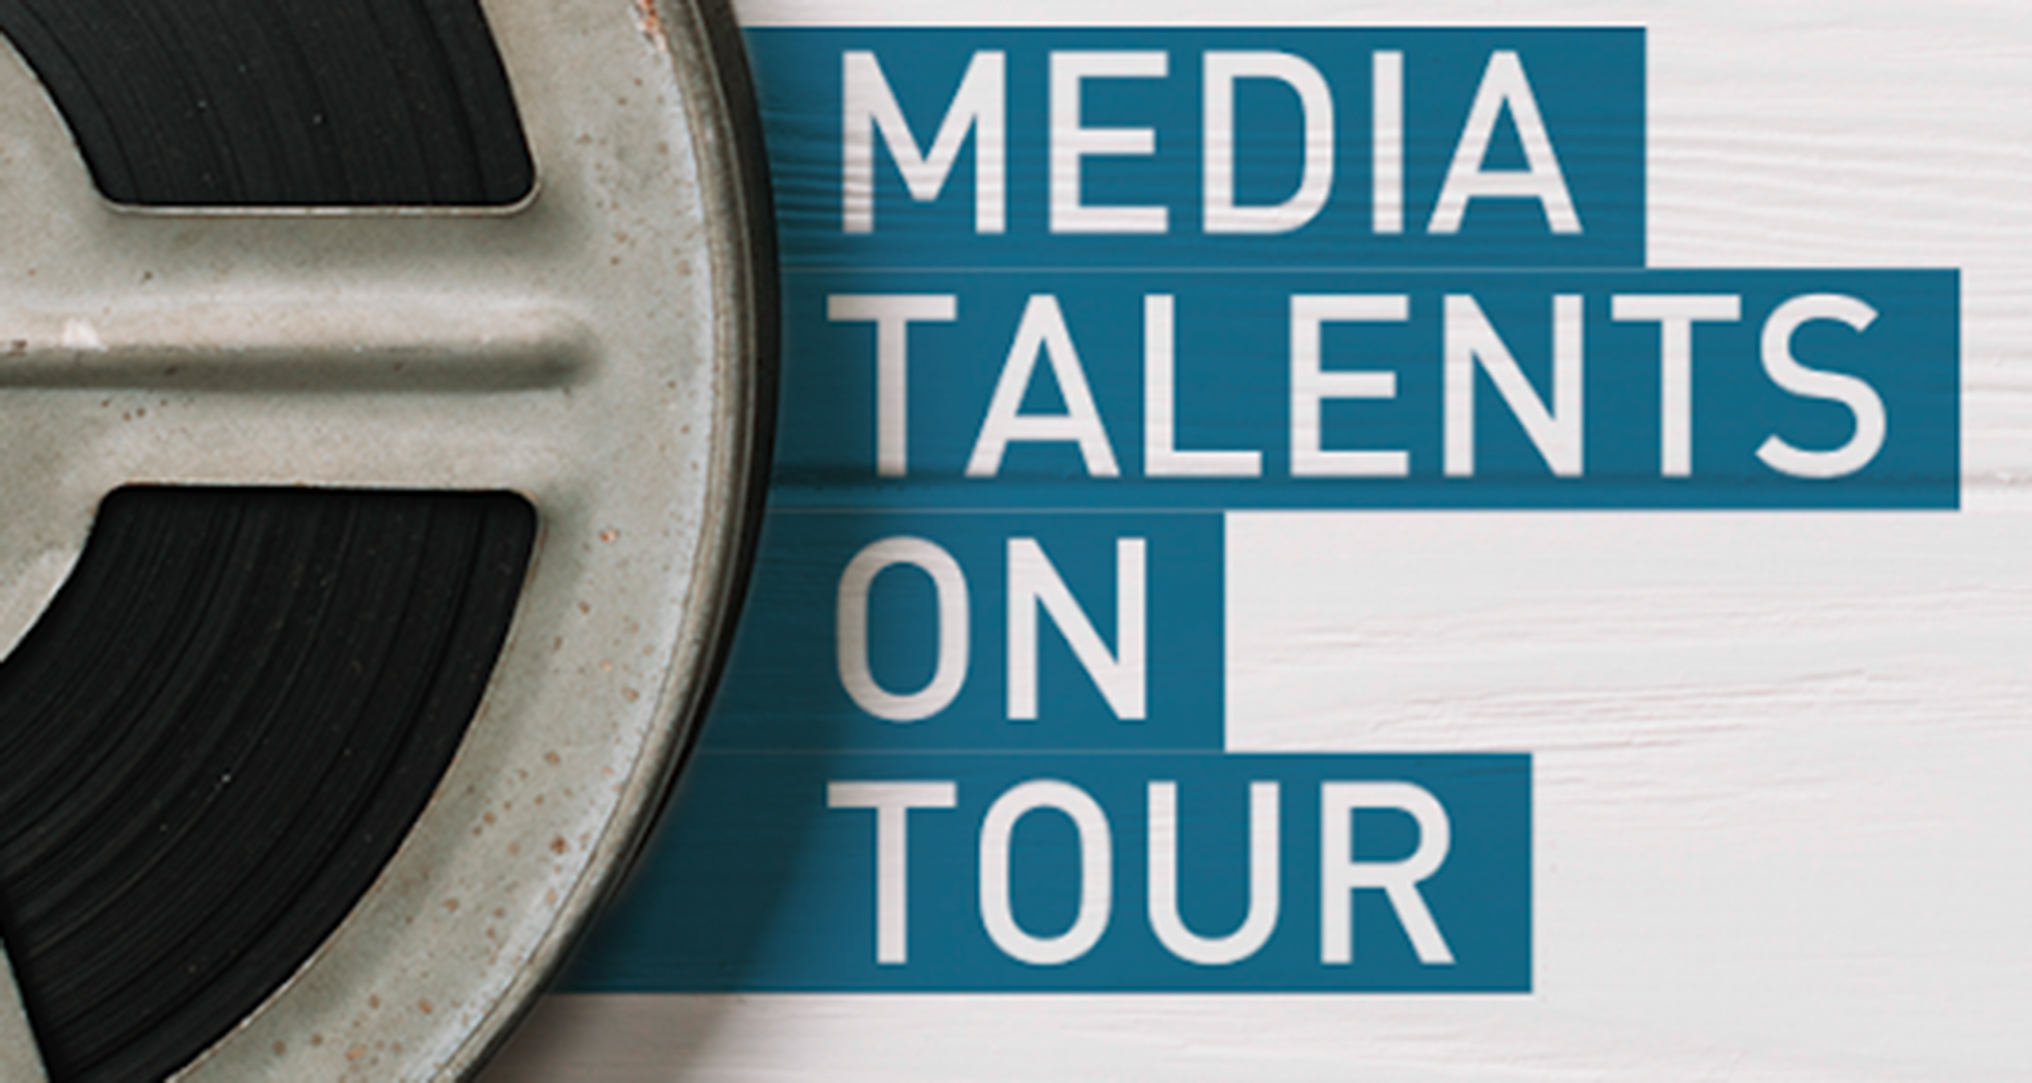 Media Talents on tour arriva a Cosenza il 21 e il 22 giugno